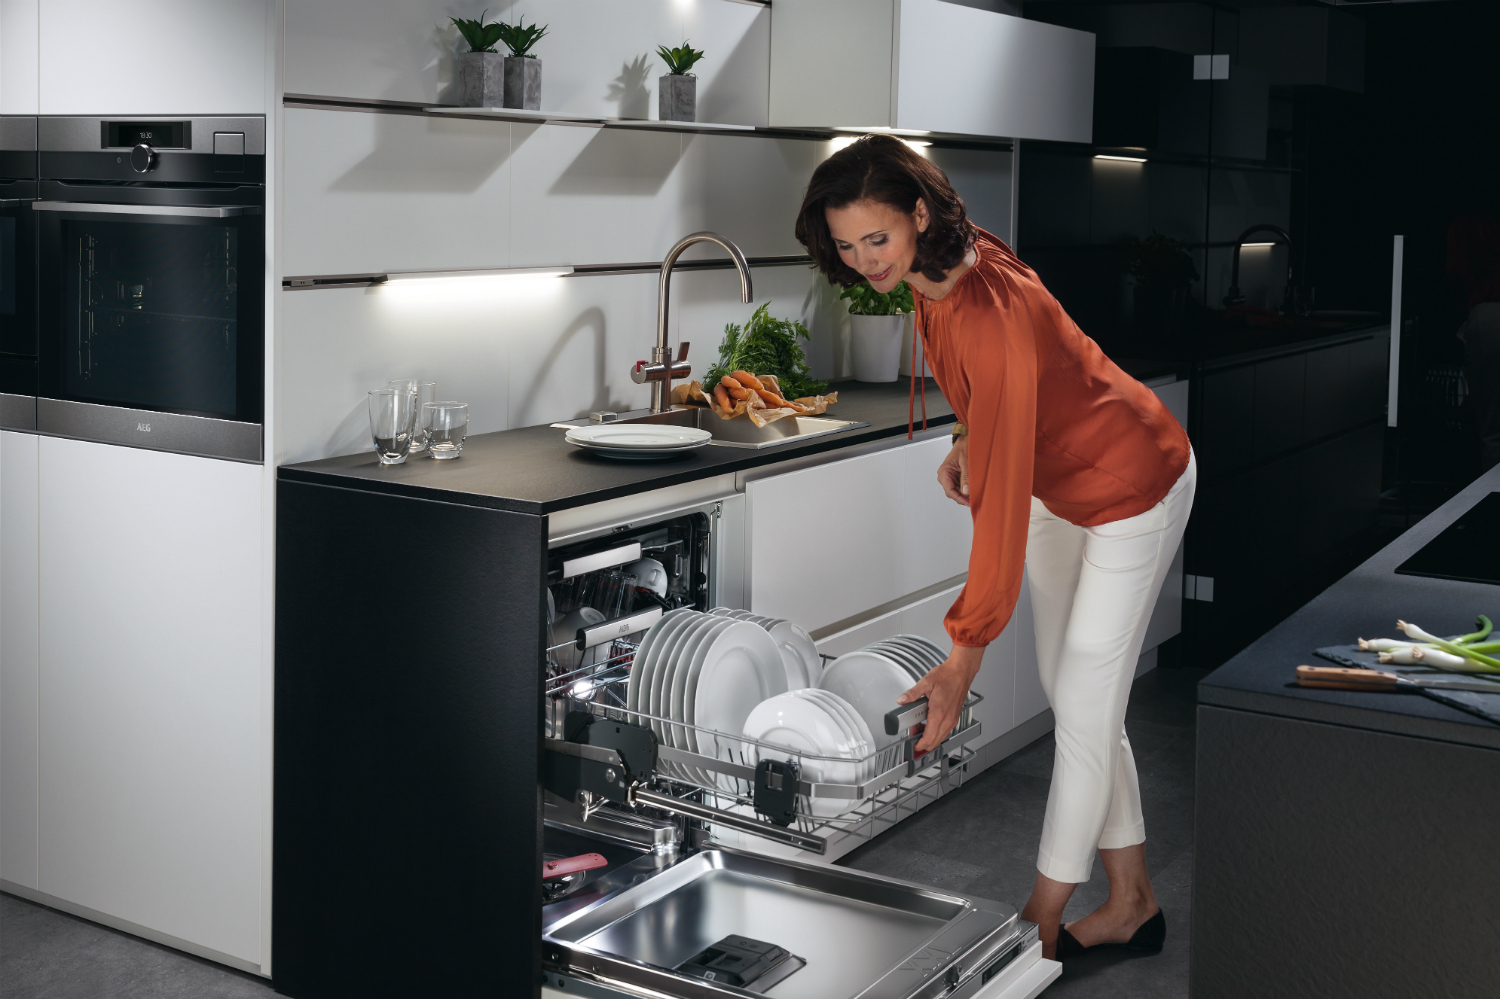 Electrolux Raises The Dishwasher Bar By Letting You Lift